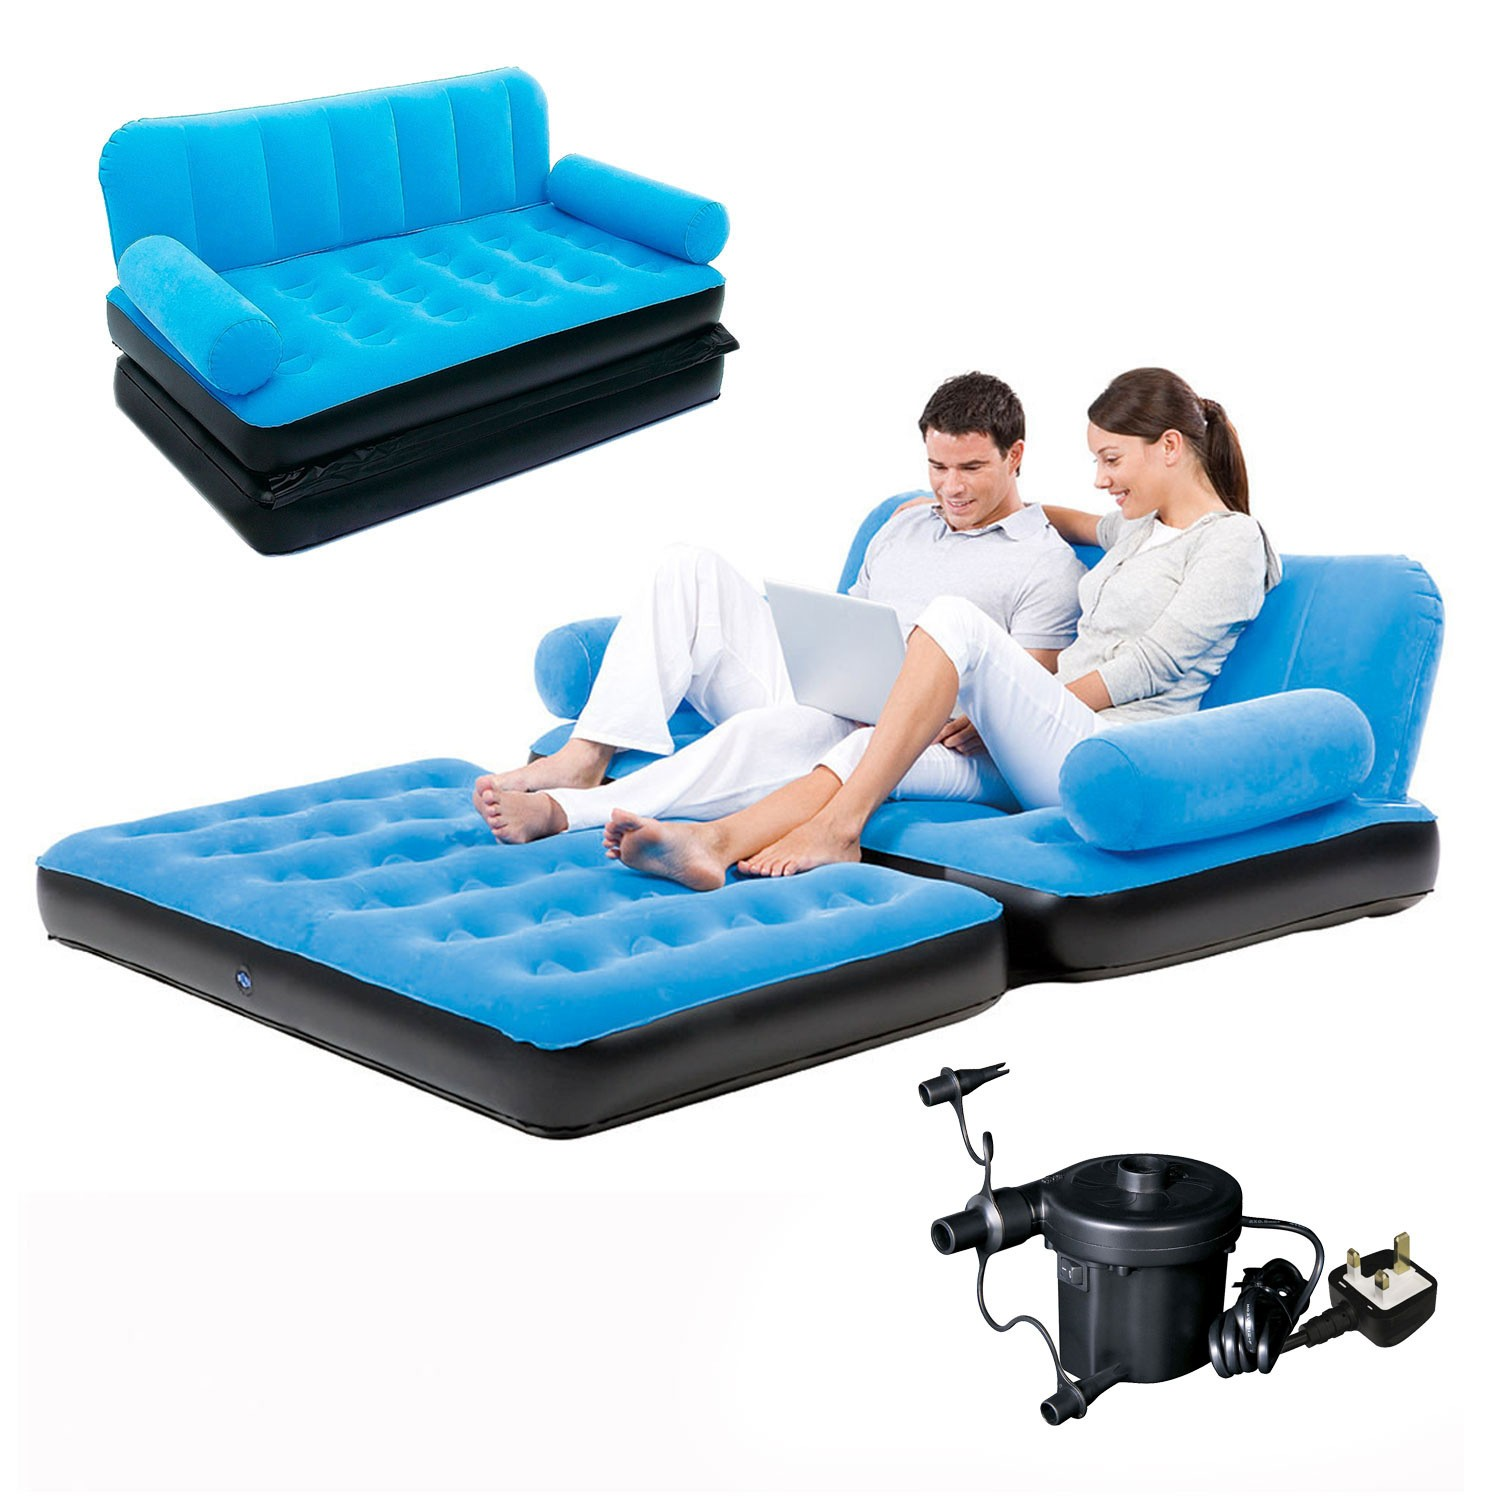 Blow Up sofa Latest Inflatable Double sofa Air Bed Couch Blow Up Mattress with Pump Image